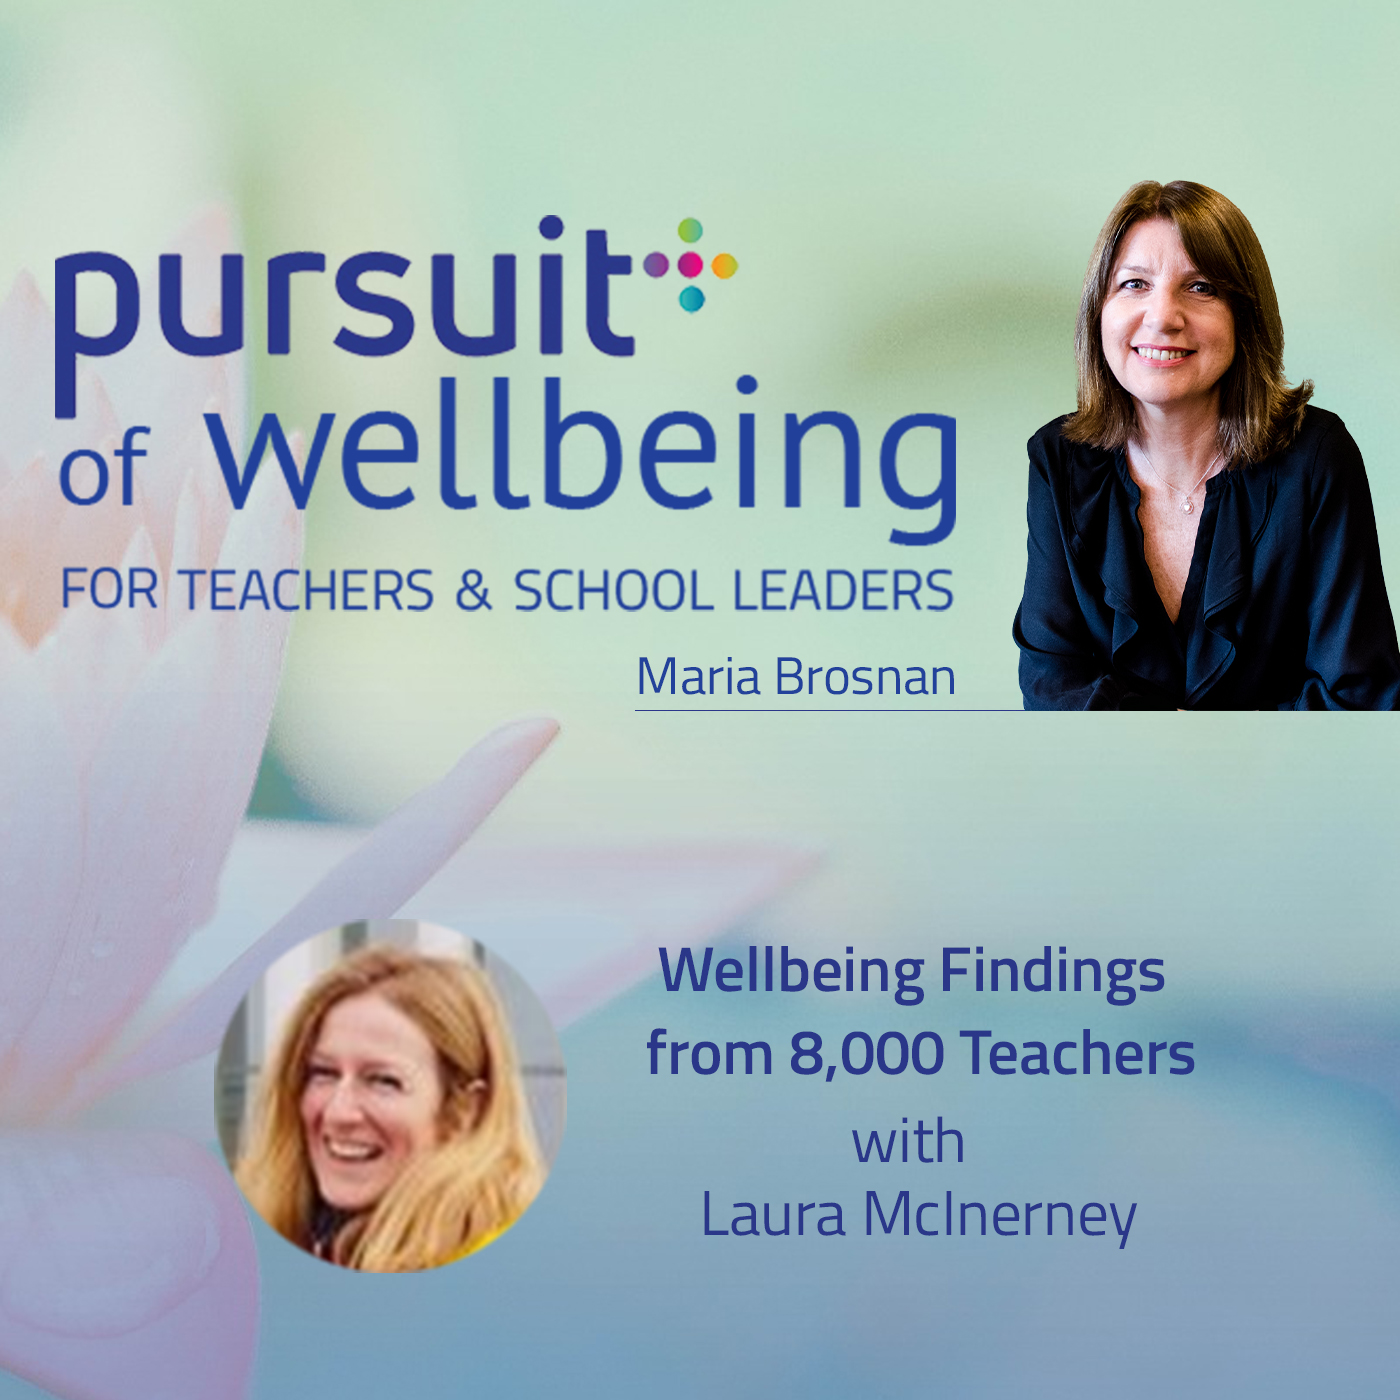 Wellbeing Findings from 8,000 teachers with Laura McInerney